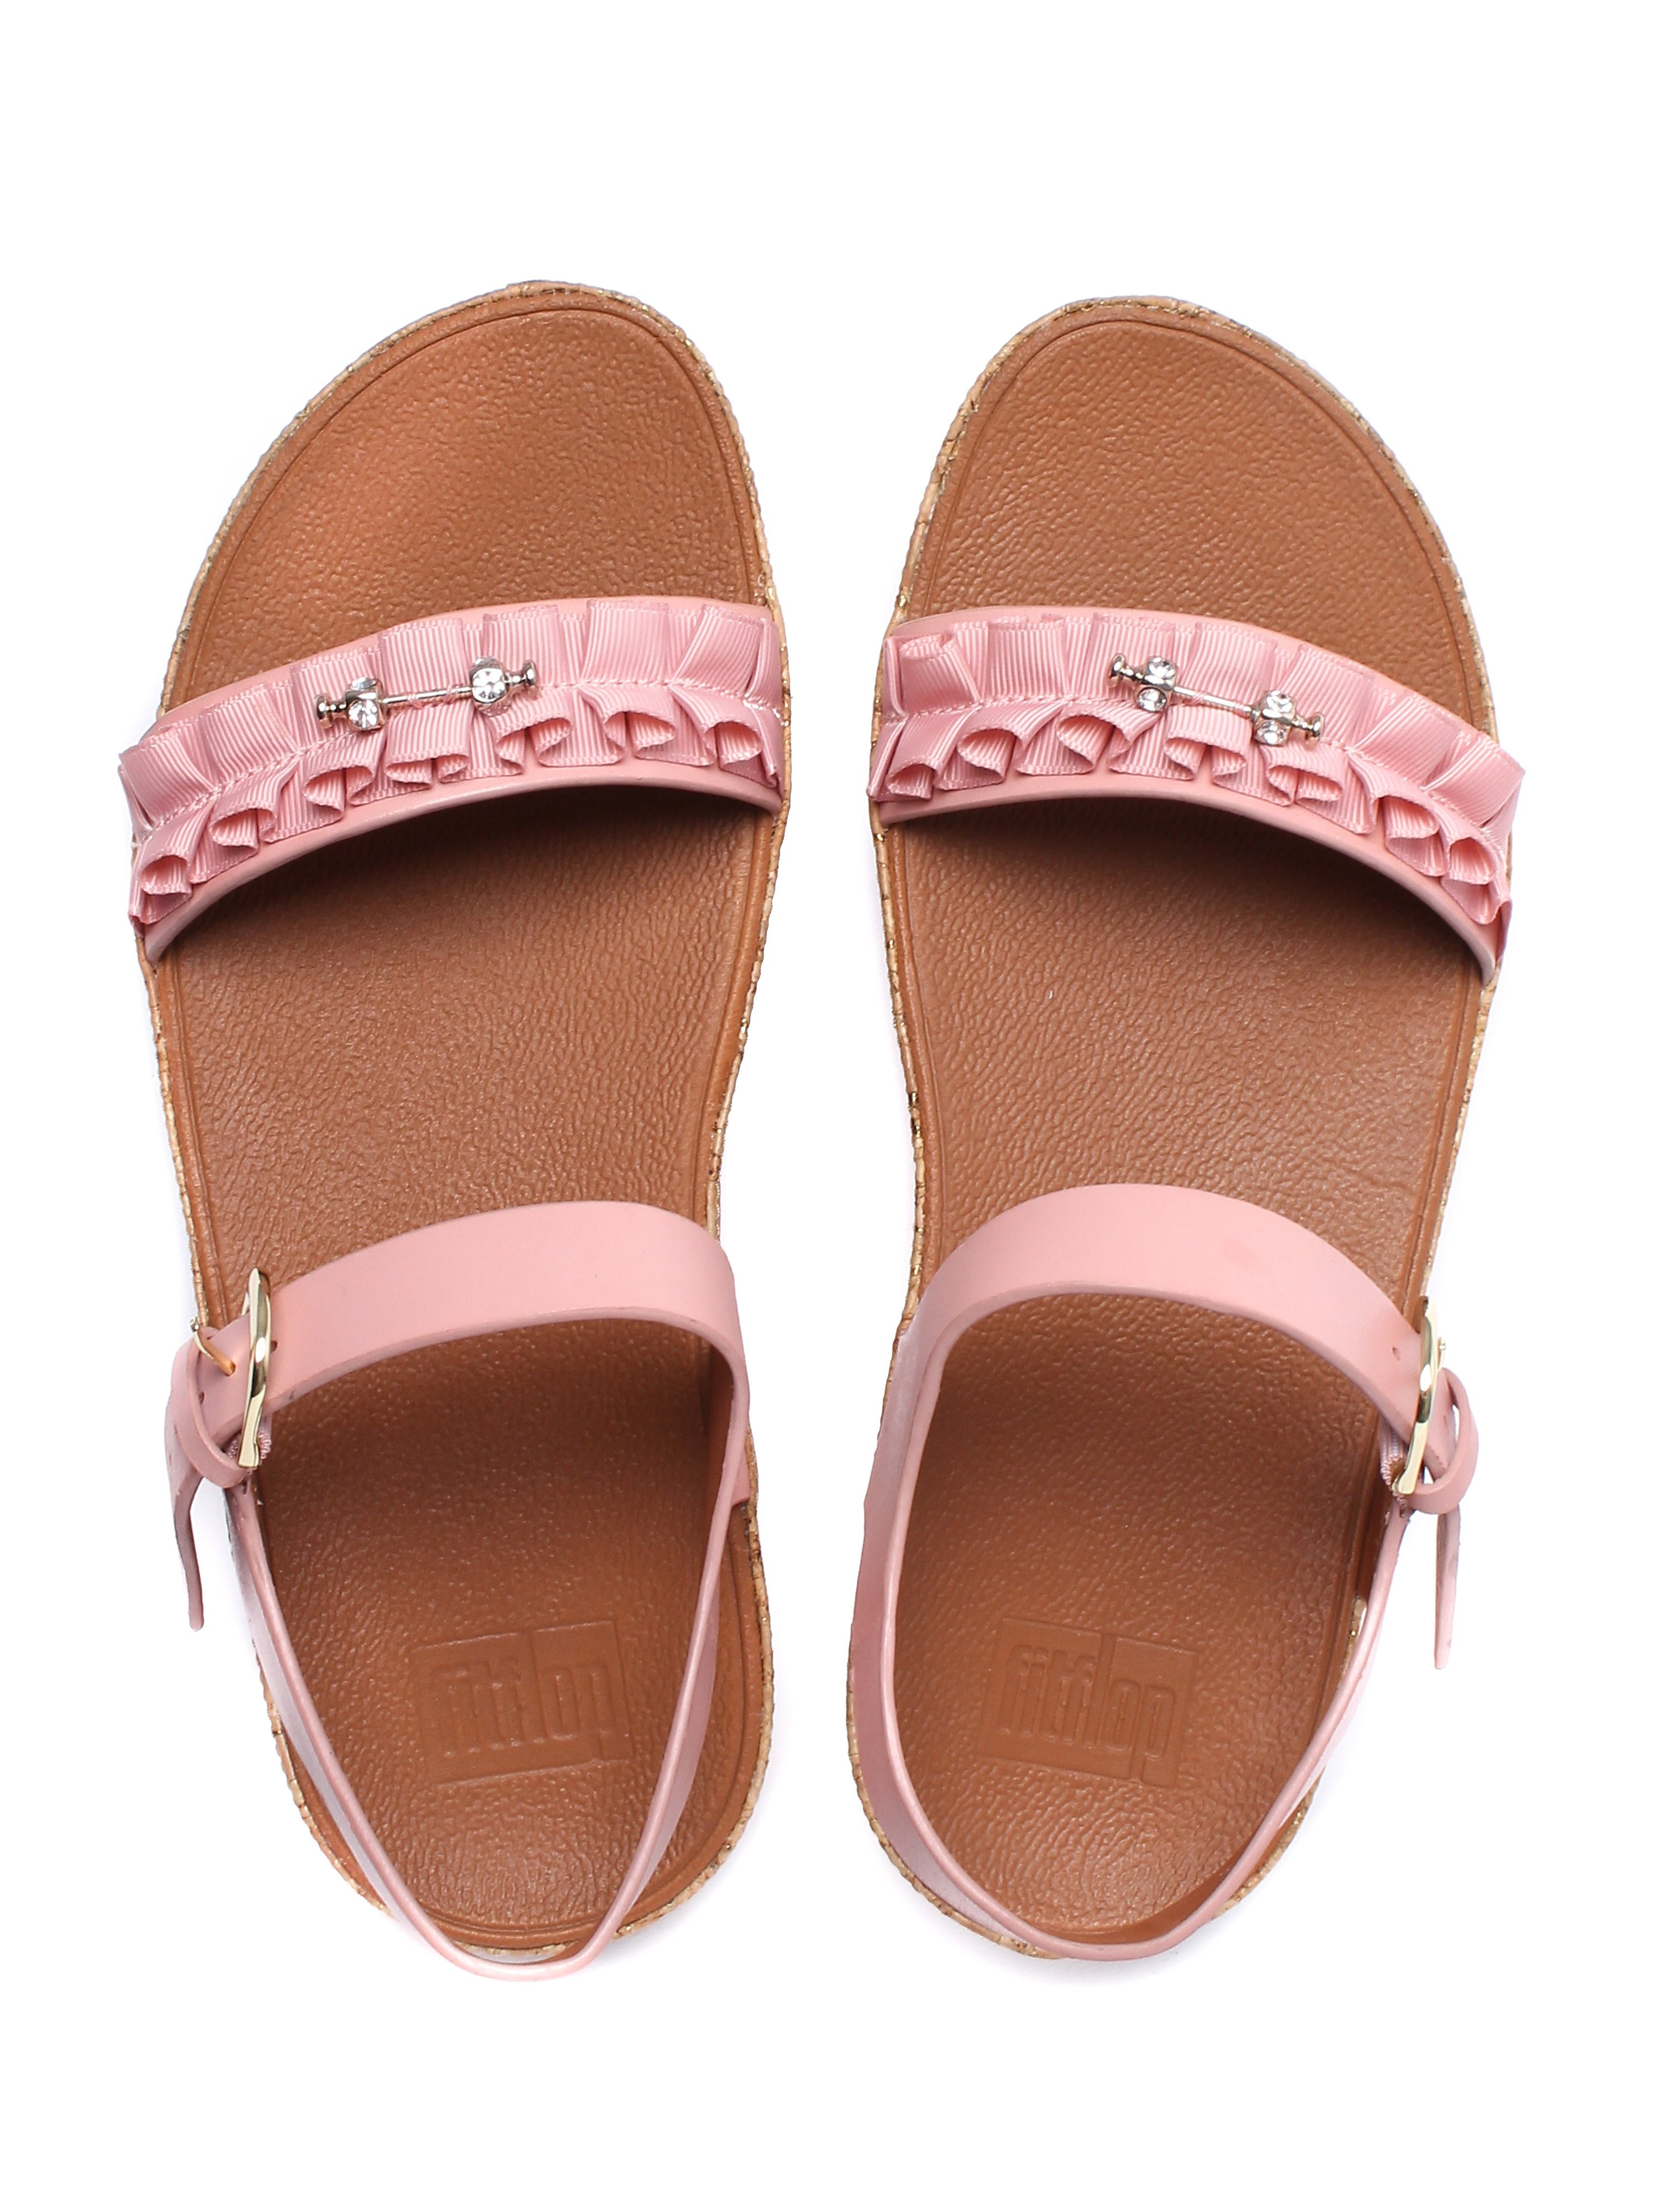 FitFlop Women's Ruffle Back-Strap Sandals - Dusky Pink